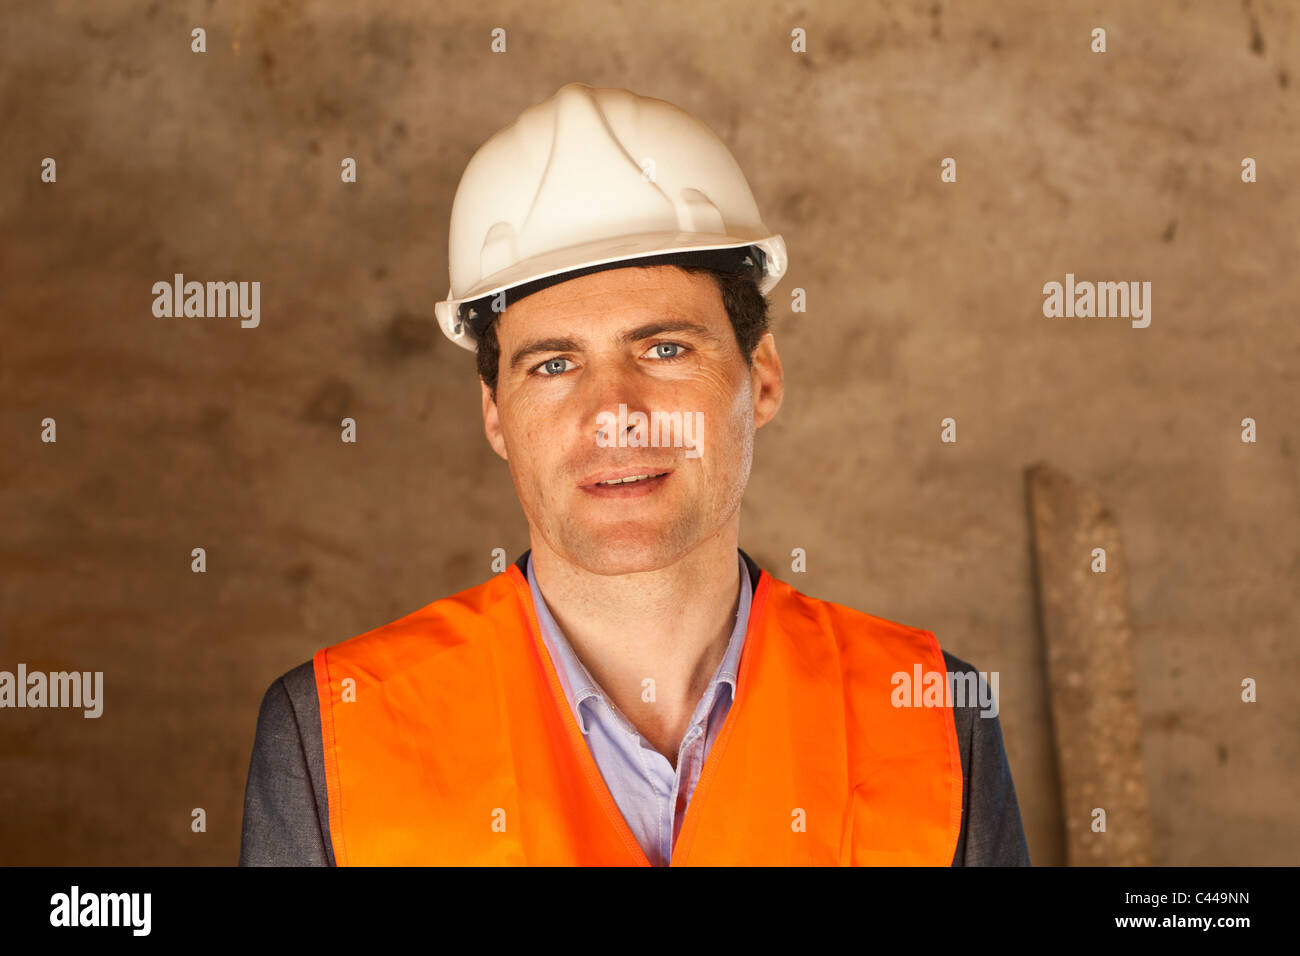 A well-dressed man wearing a hardhat and reflective vest at a building site - Stock Image